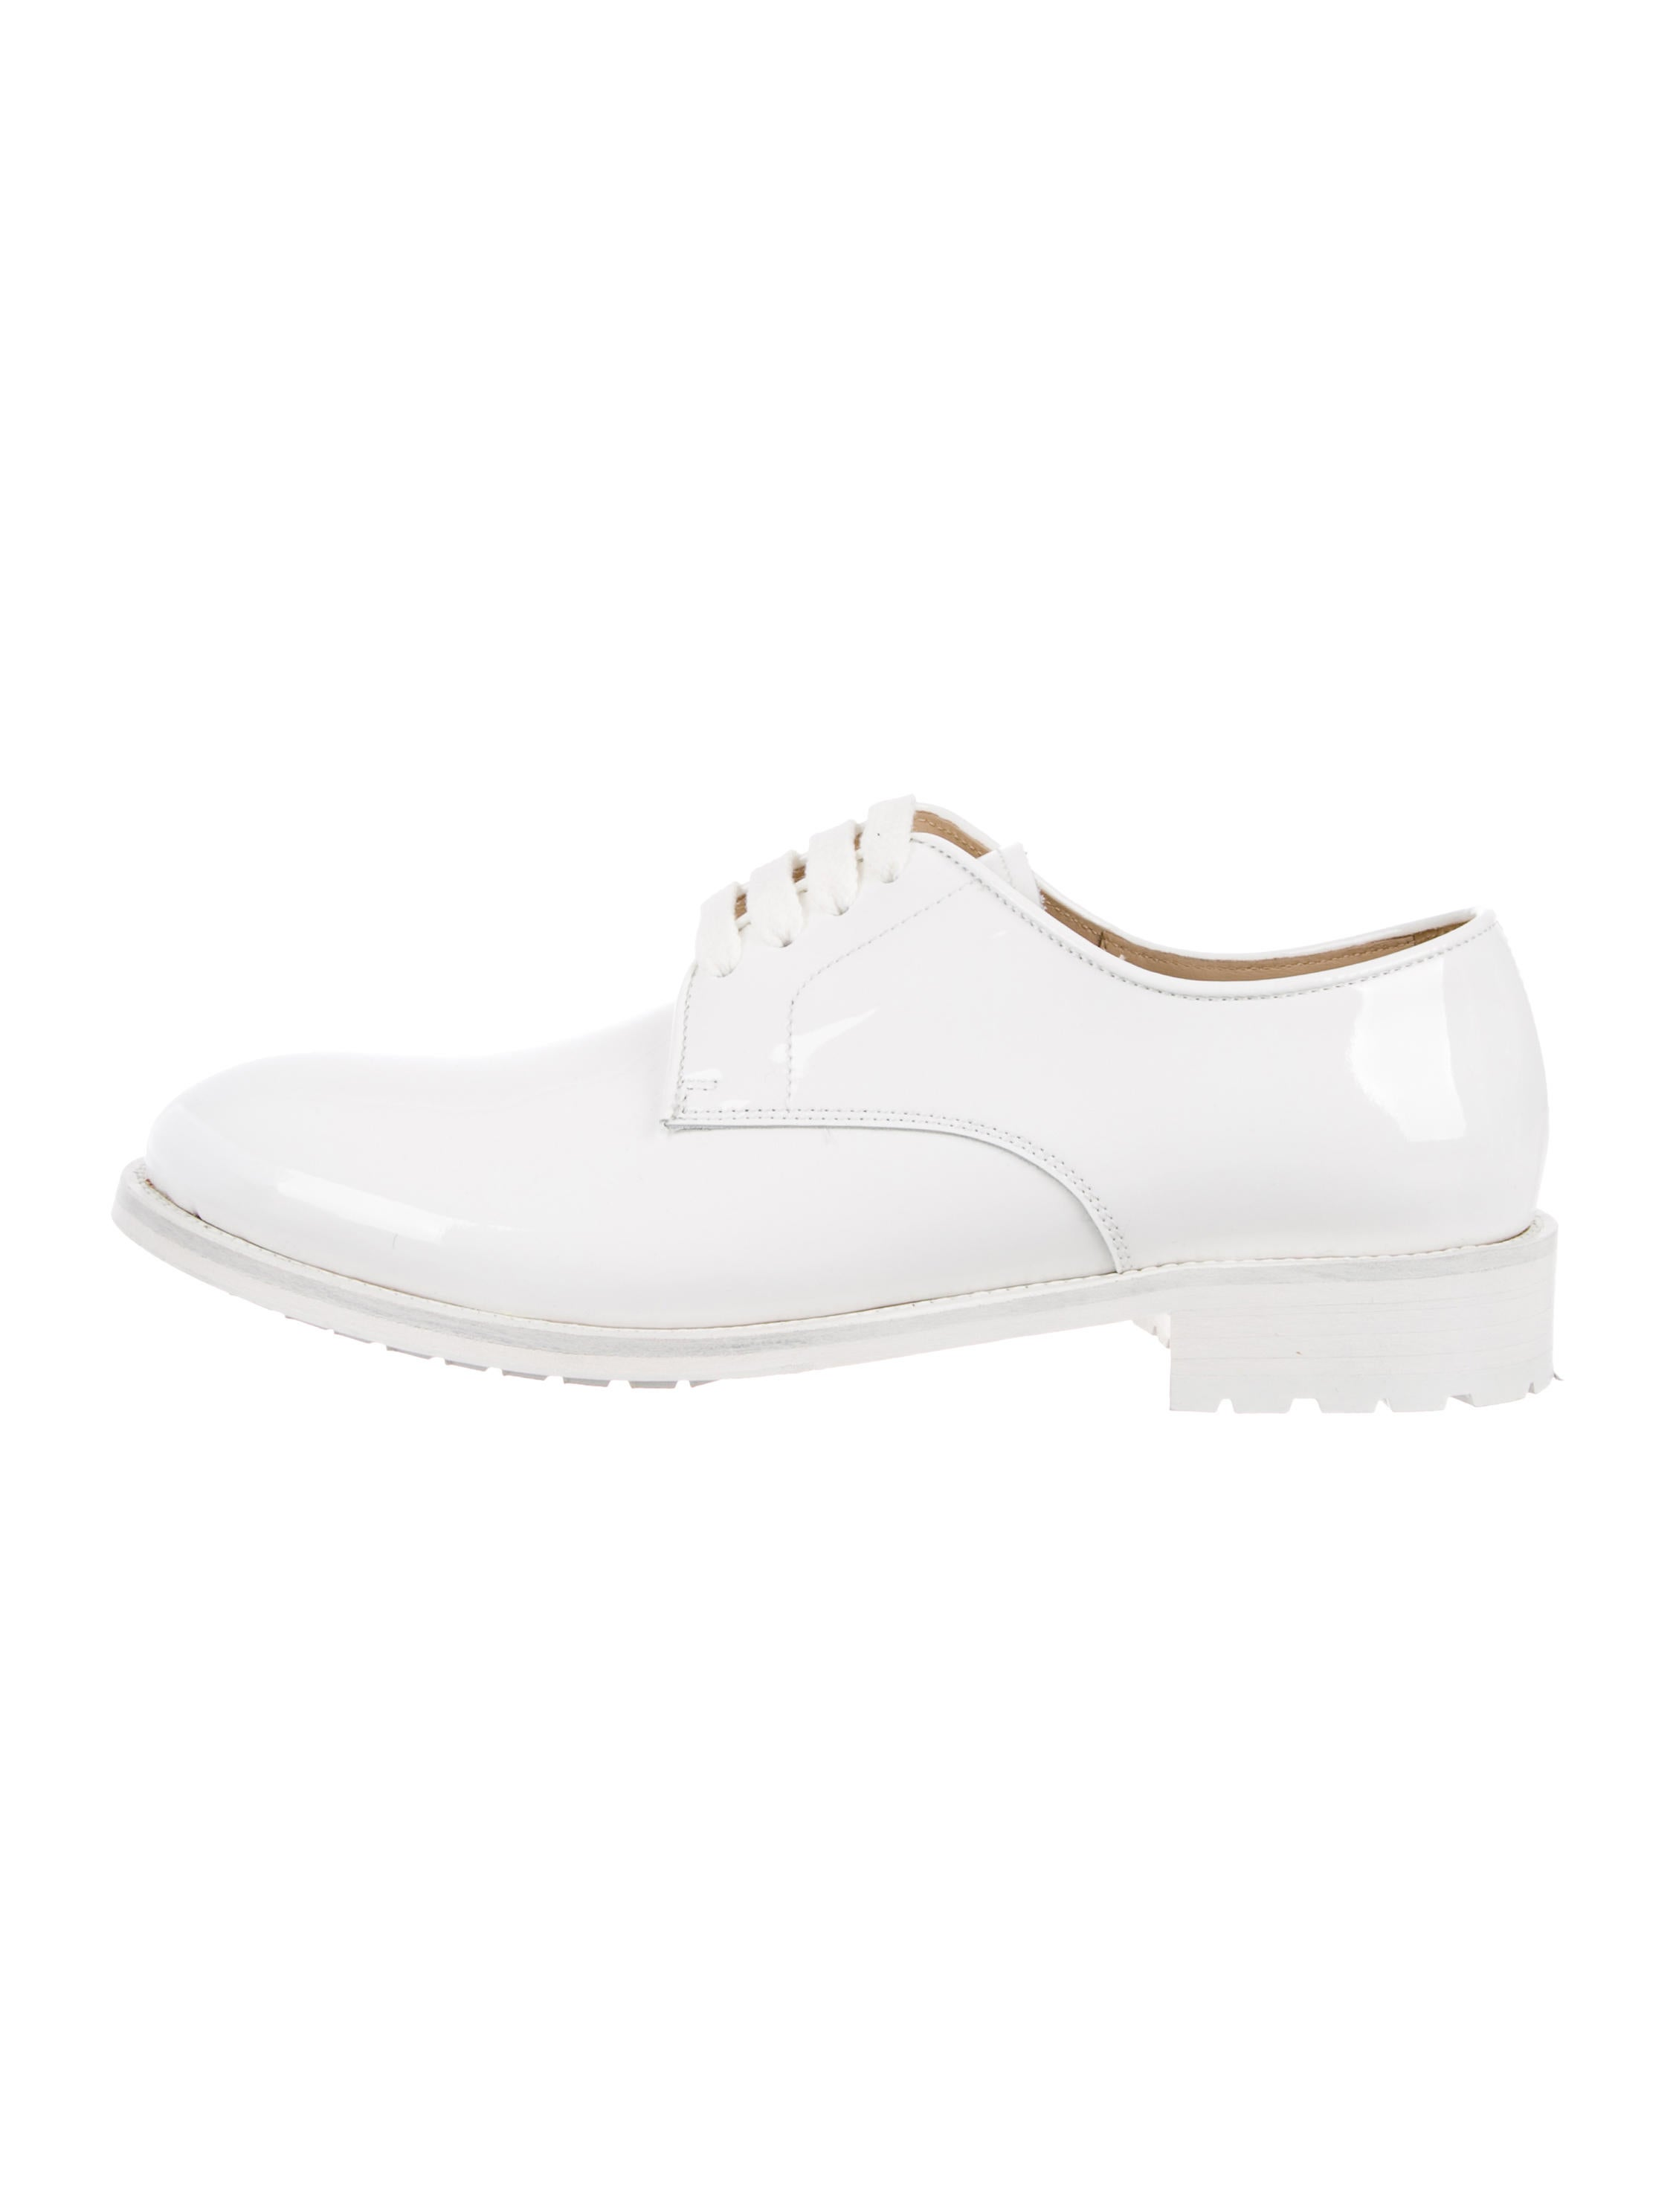 sale pre order Paul Andrew x Carolina Herrera Patent Leather Lace-Up Oxfords cheap sale sast quality from china wholesale extremely cheap price clearance wide range of Ktkx49FU3X